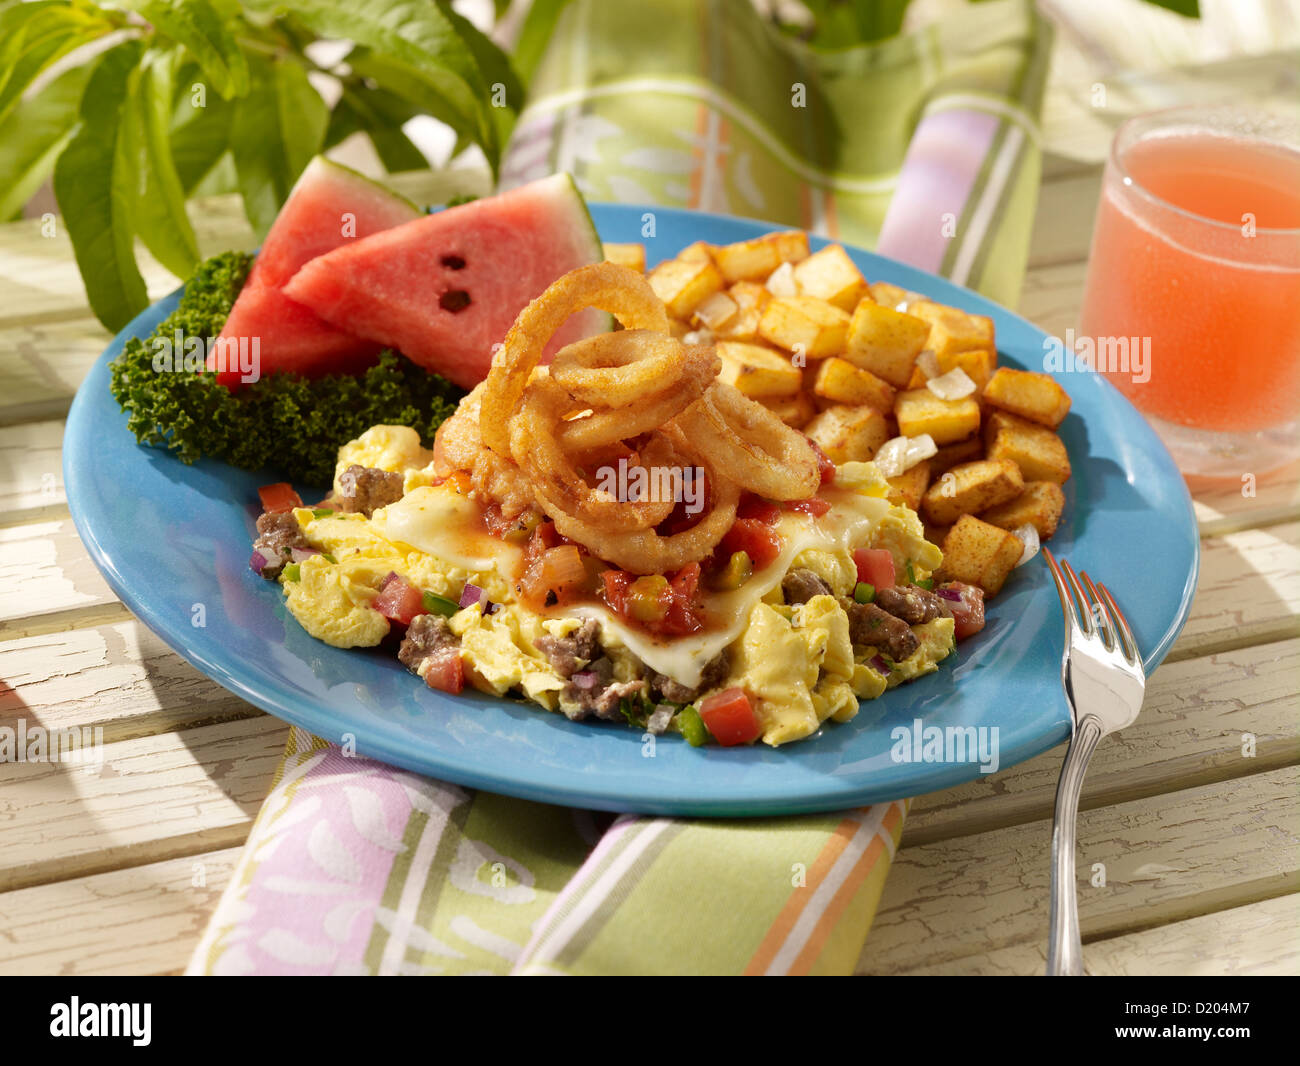 Santa Fe summer scramble topped with onion rings and served with potatoes - Stock Image